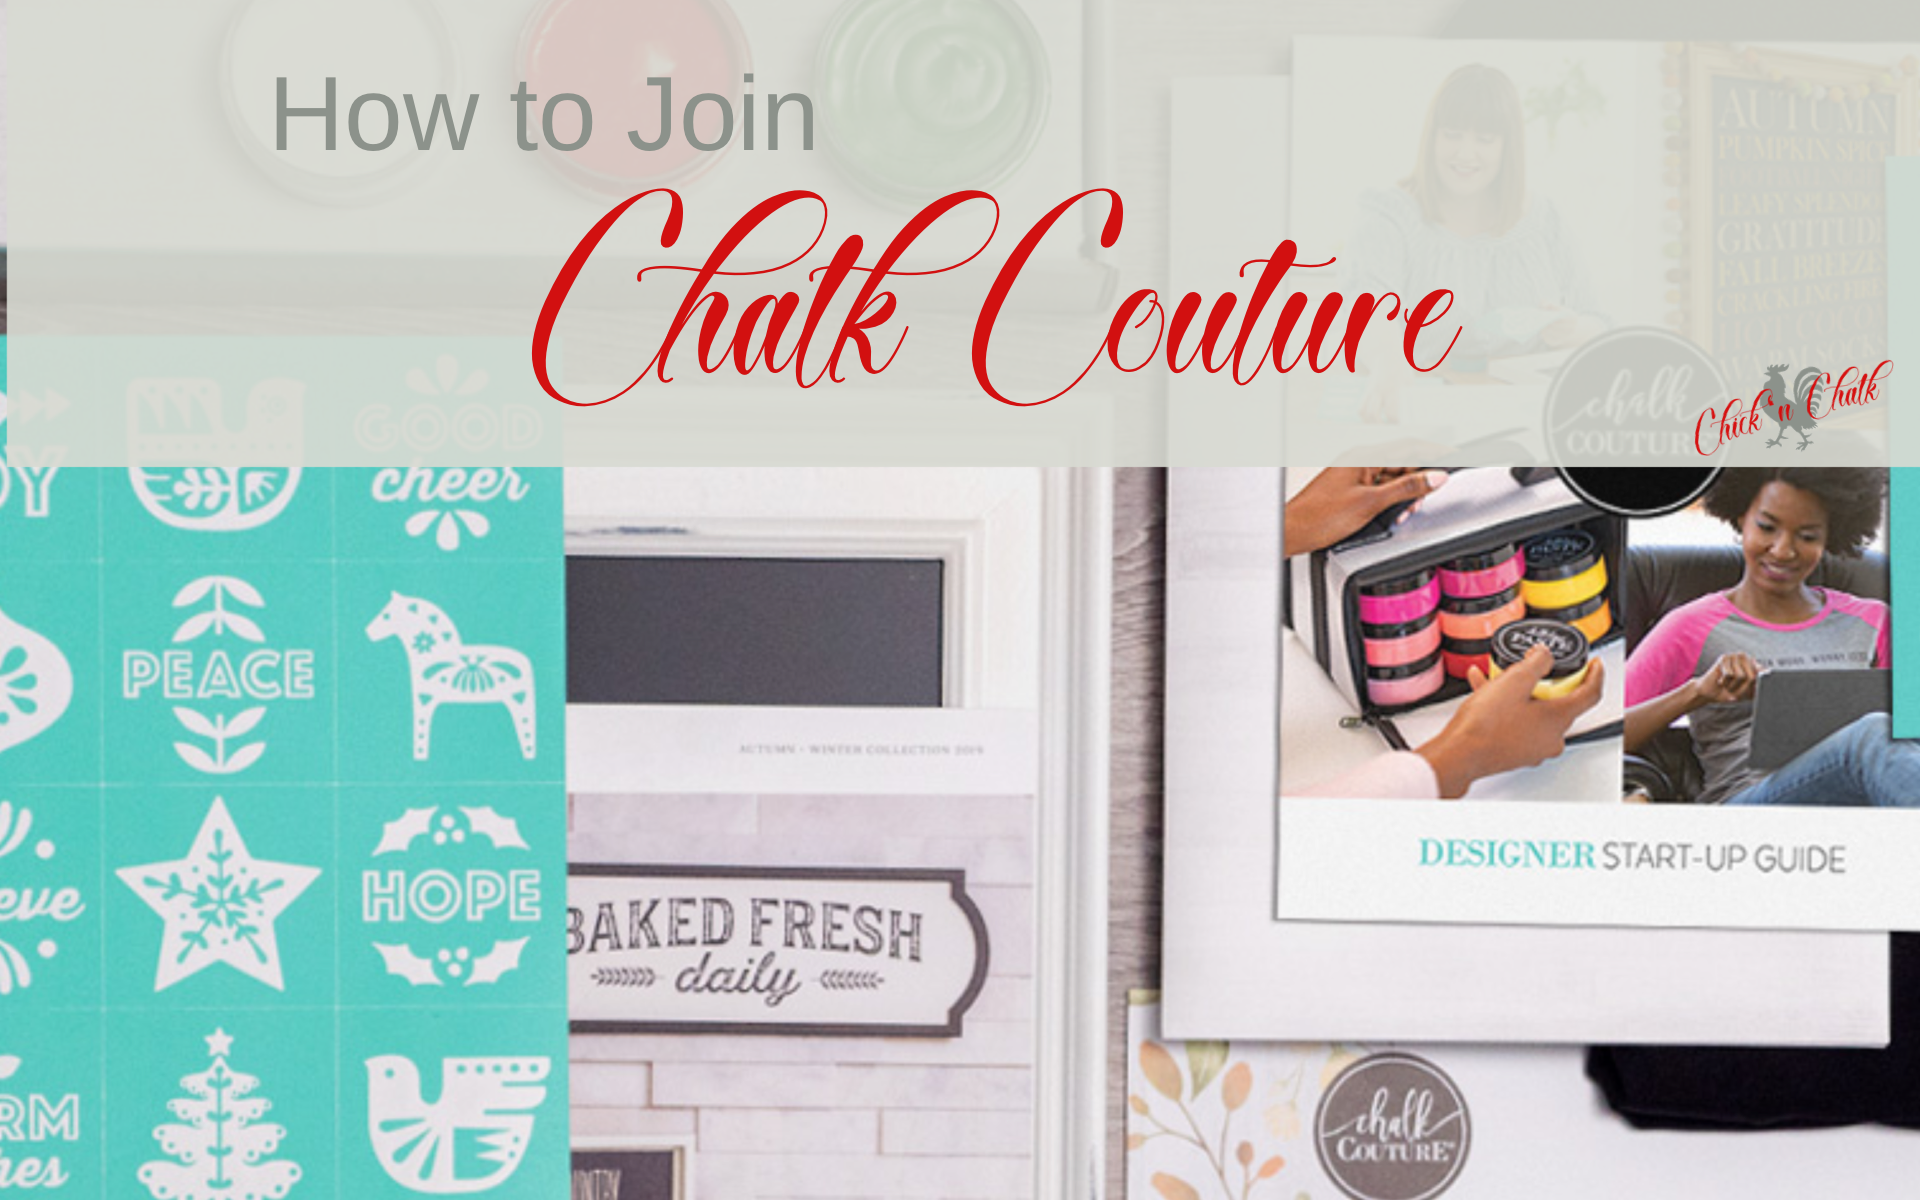 Become a chalk couture designer